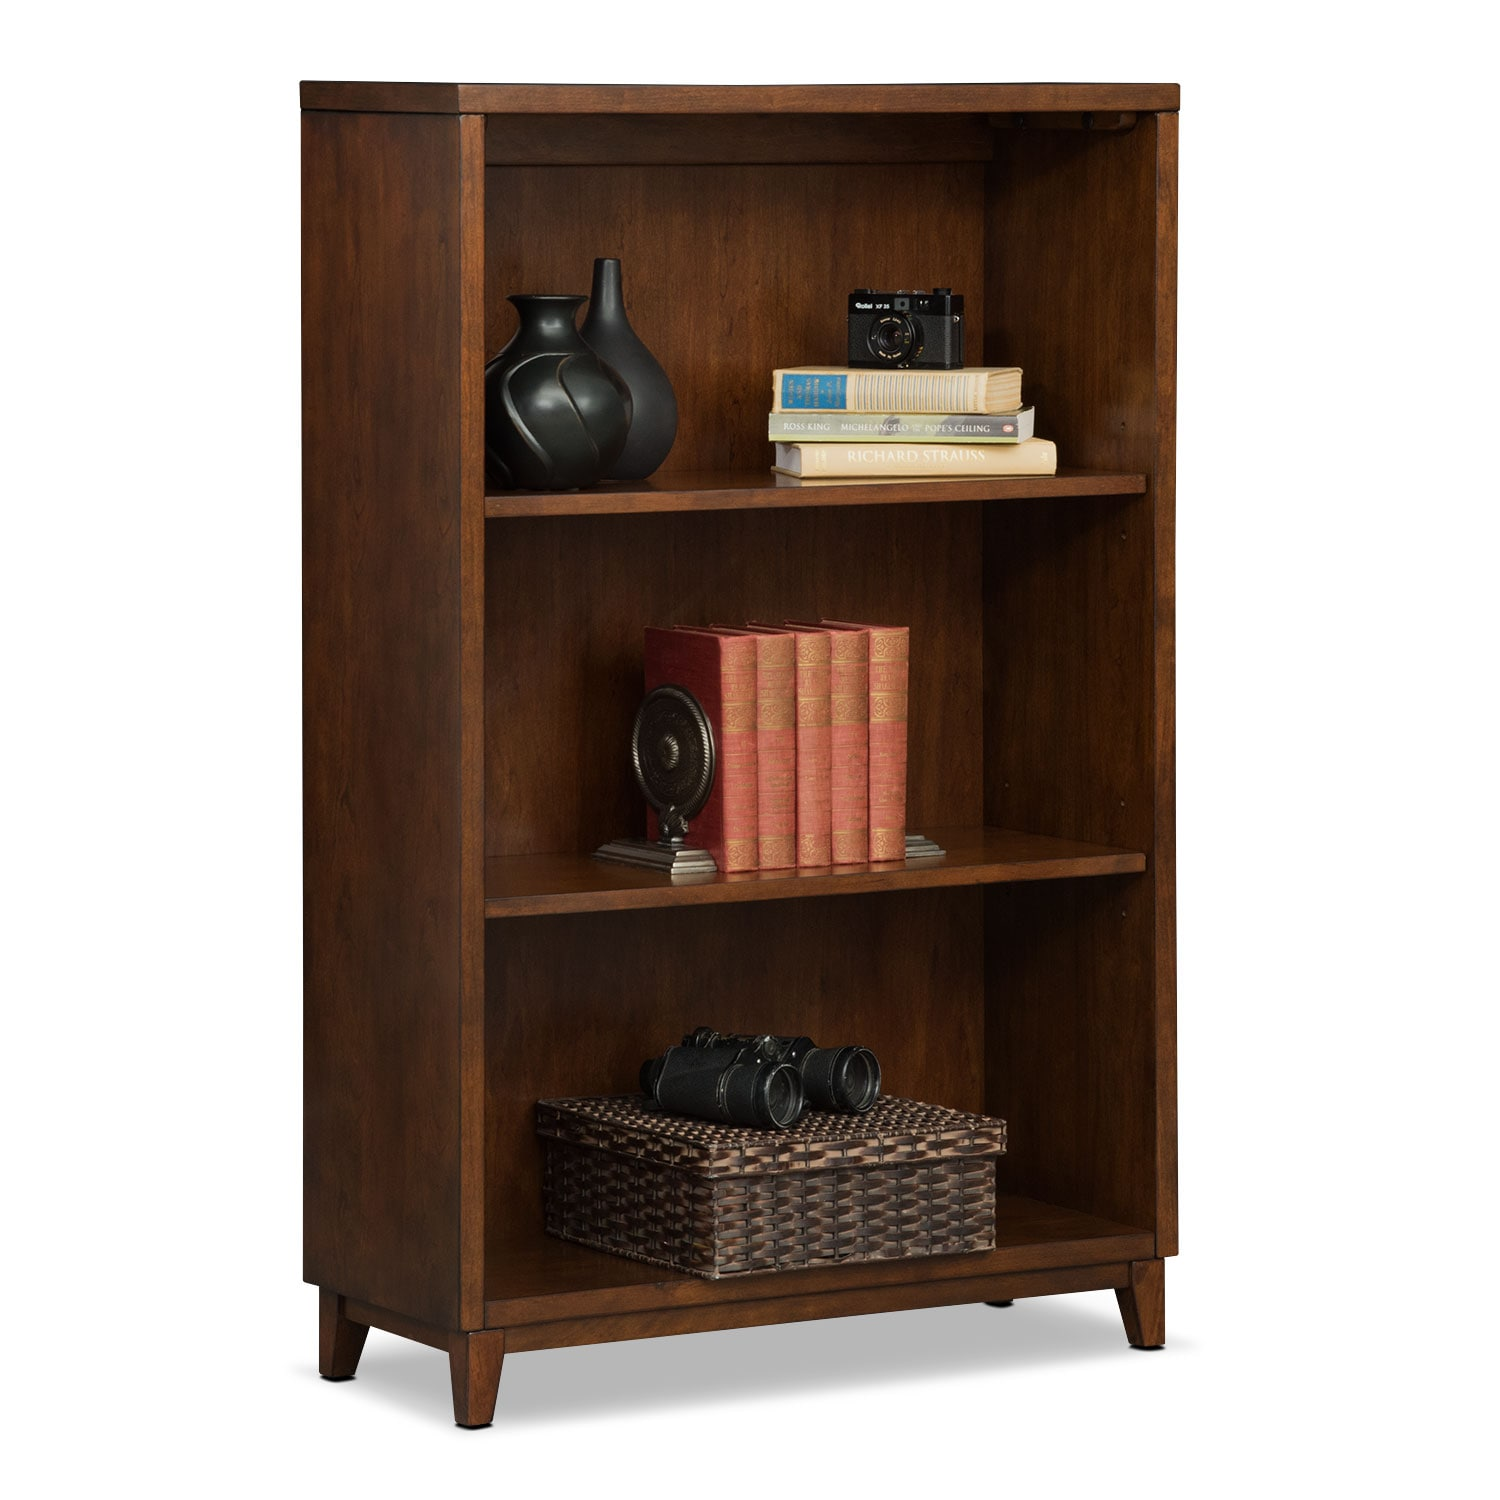 "Home Office Furniture - Oslo 46"" Bookcase - Cherry"